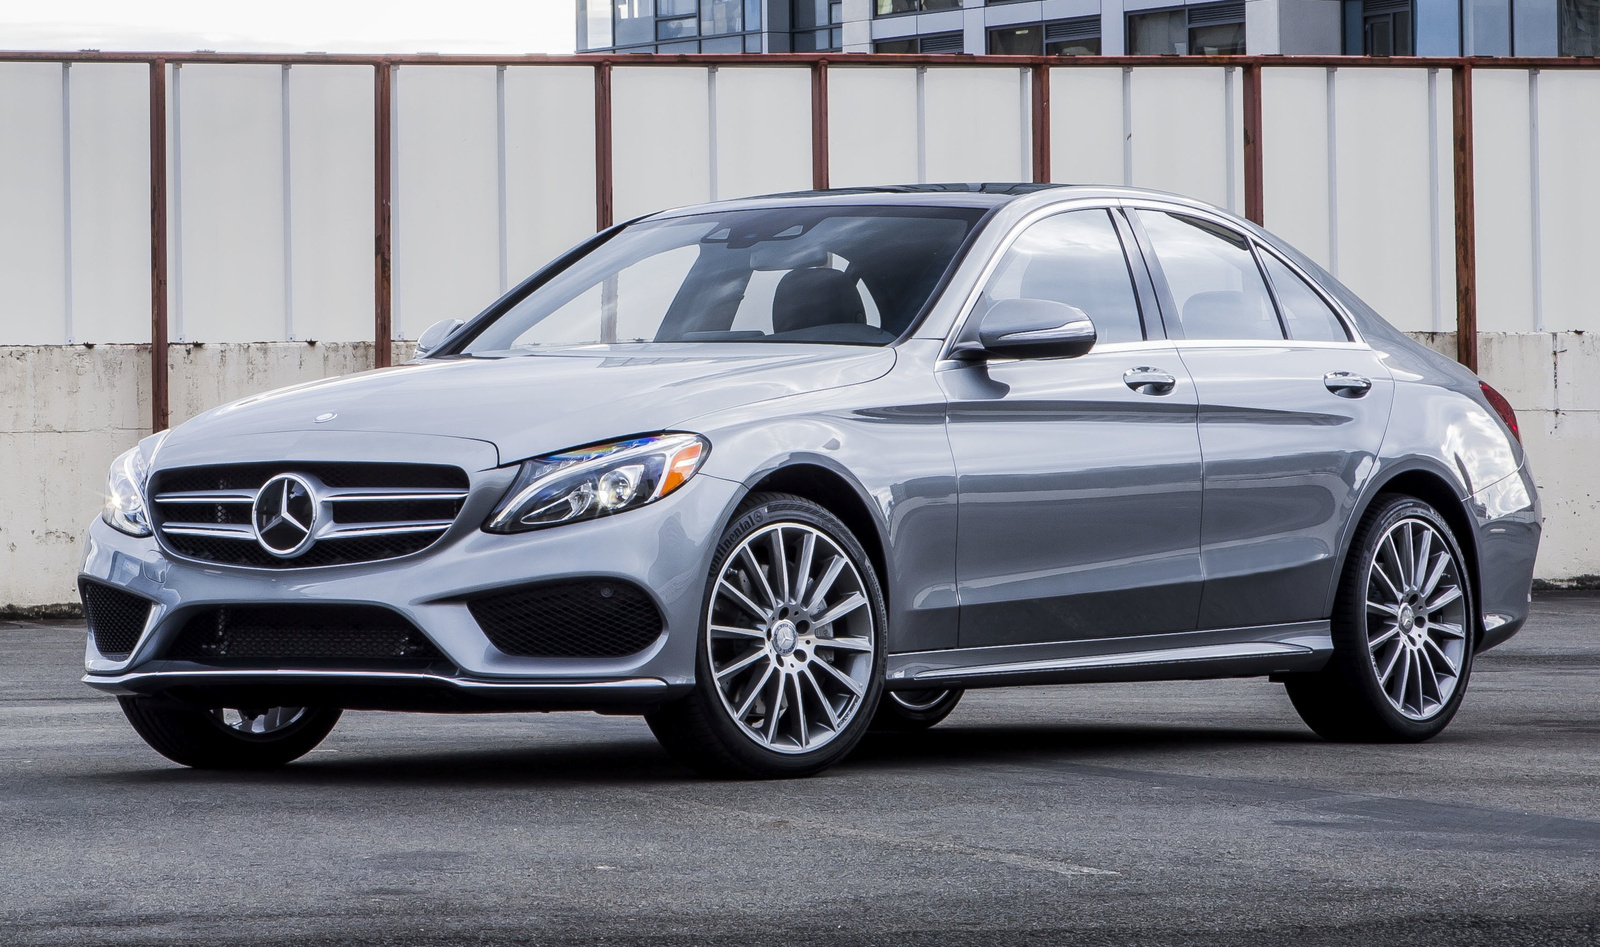 2015 mercedes benz c class overview cargurus for Mercedes benz c250 cargurus